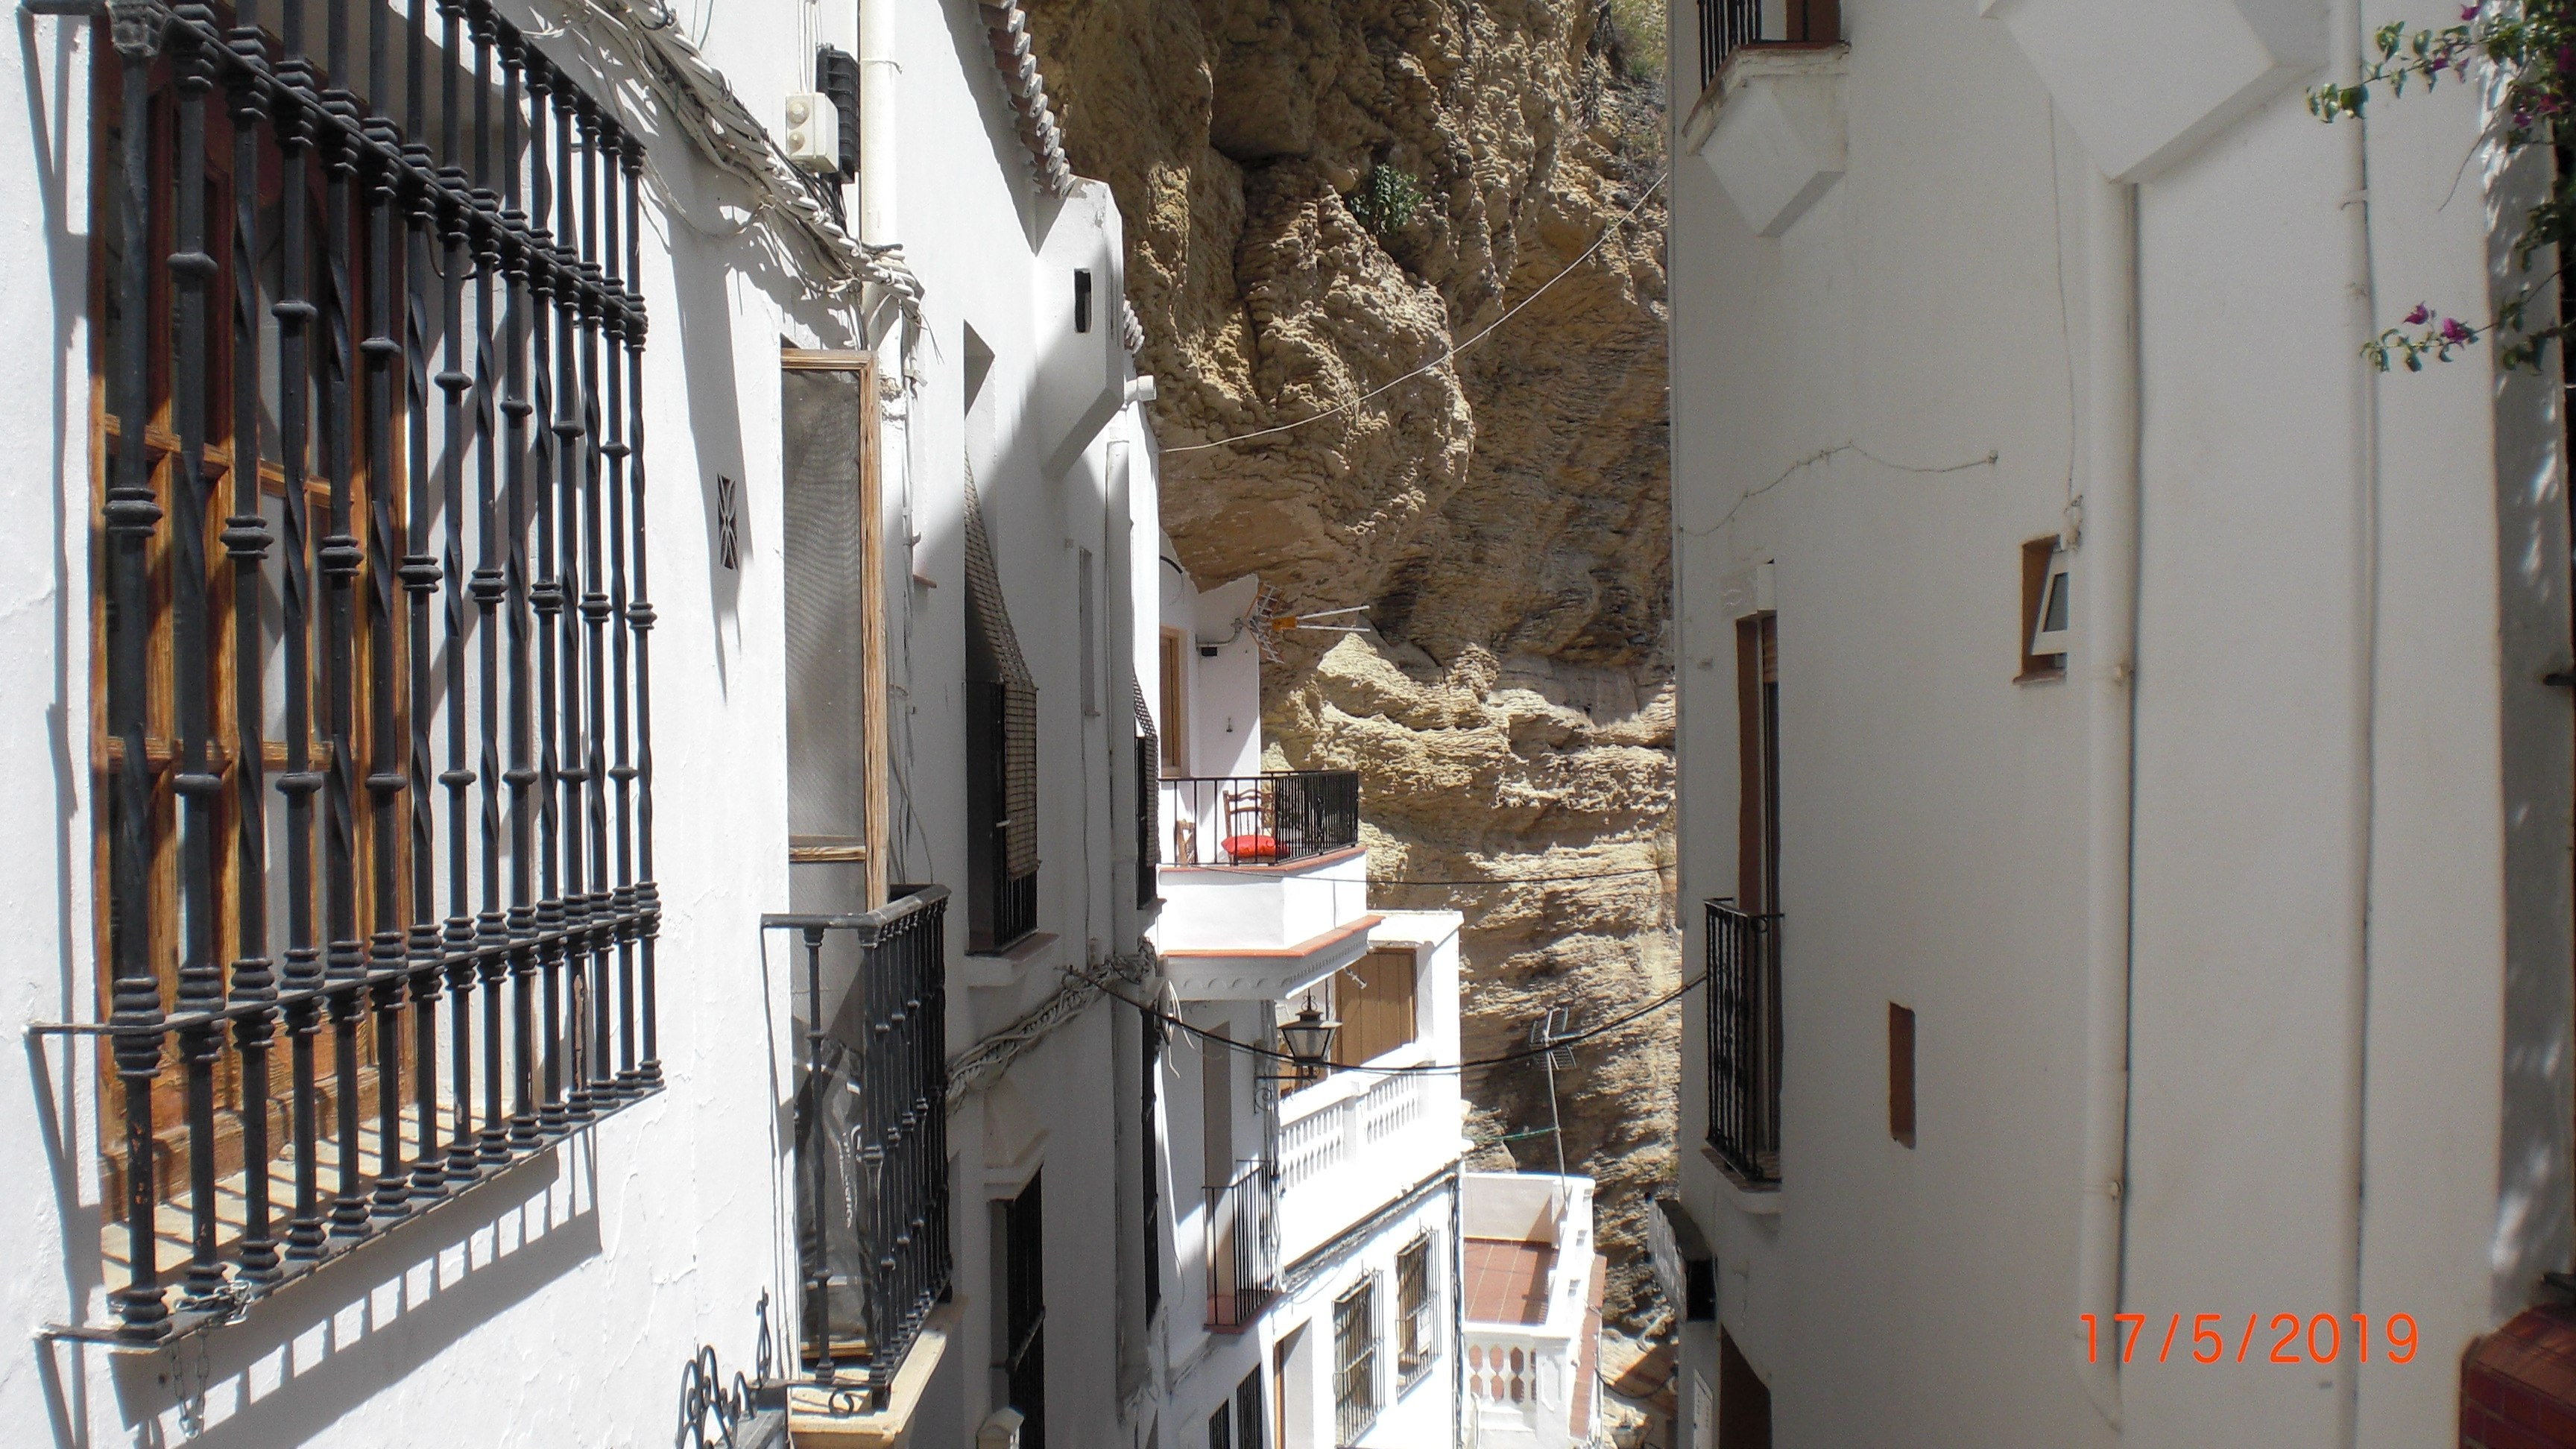 Very narrow and steep passage